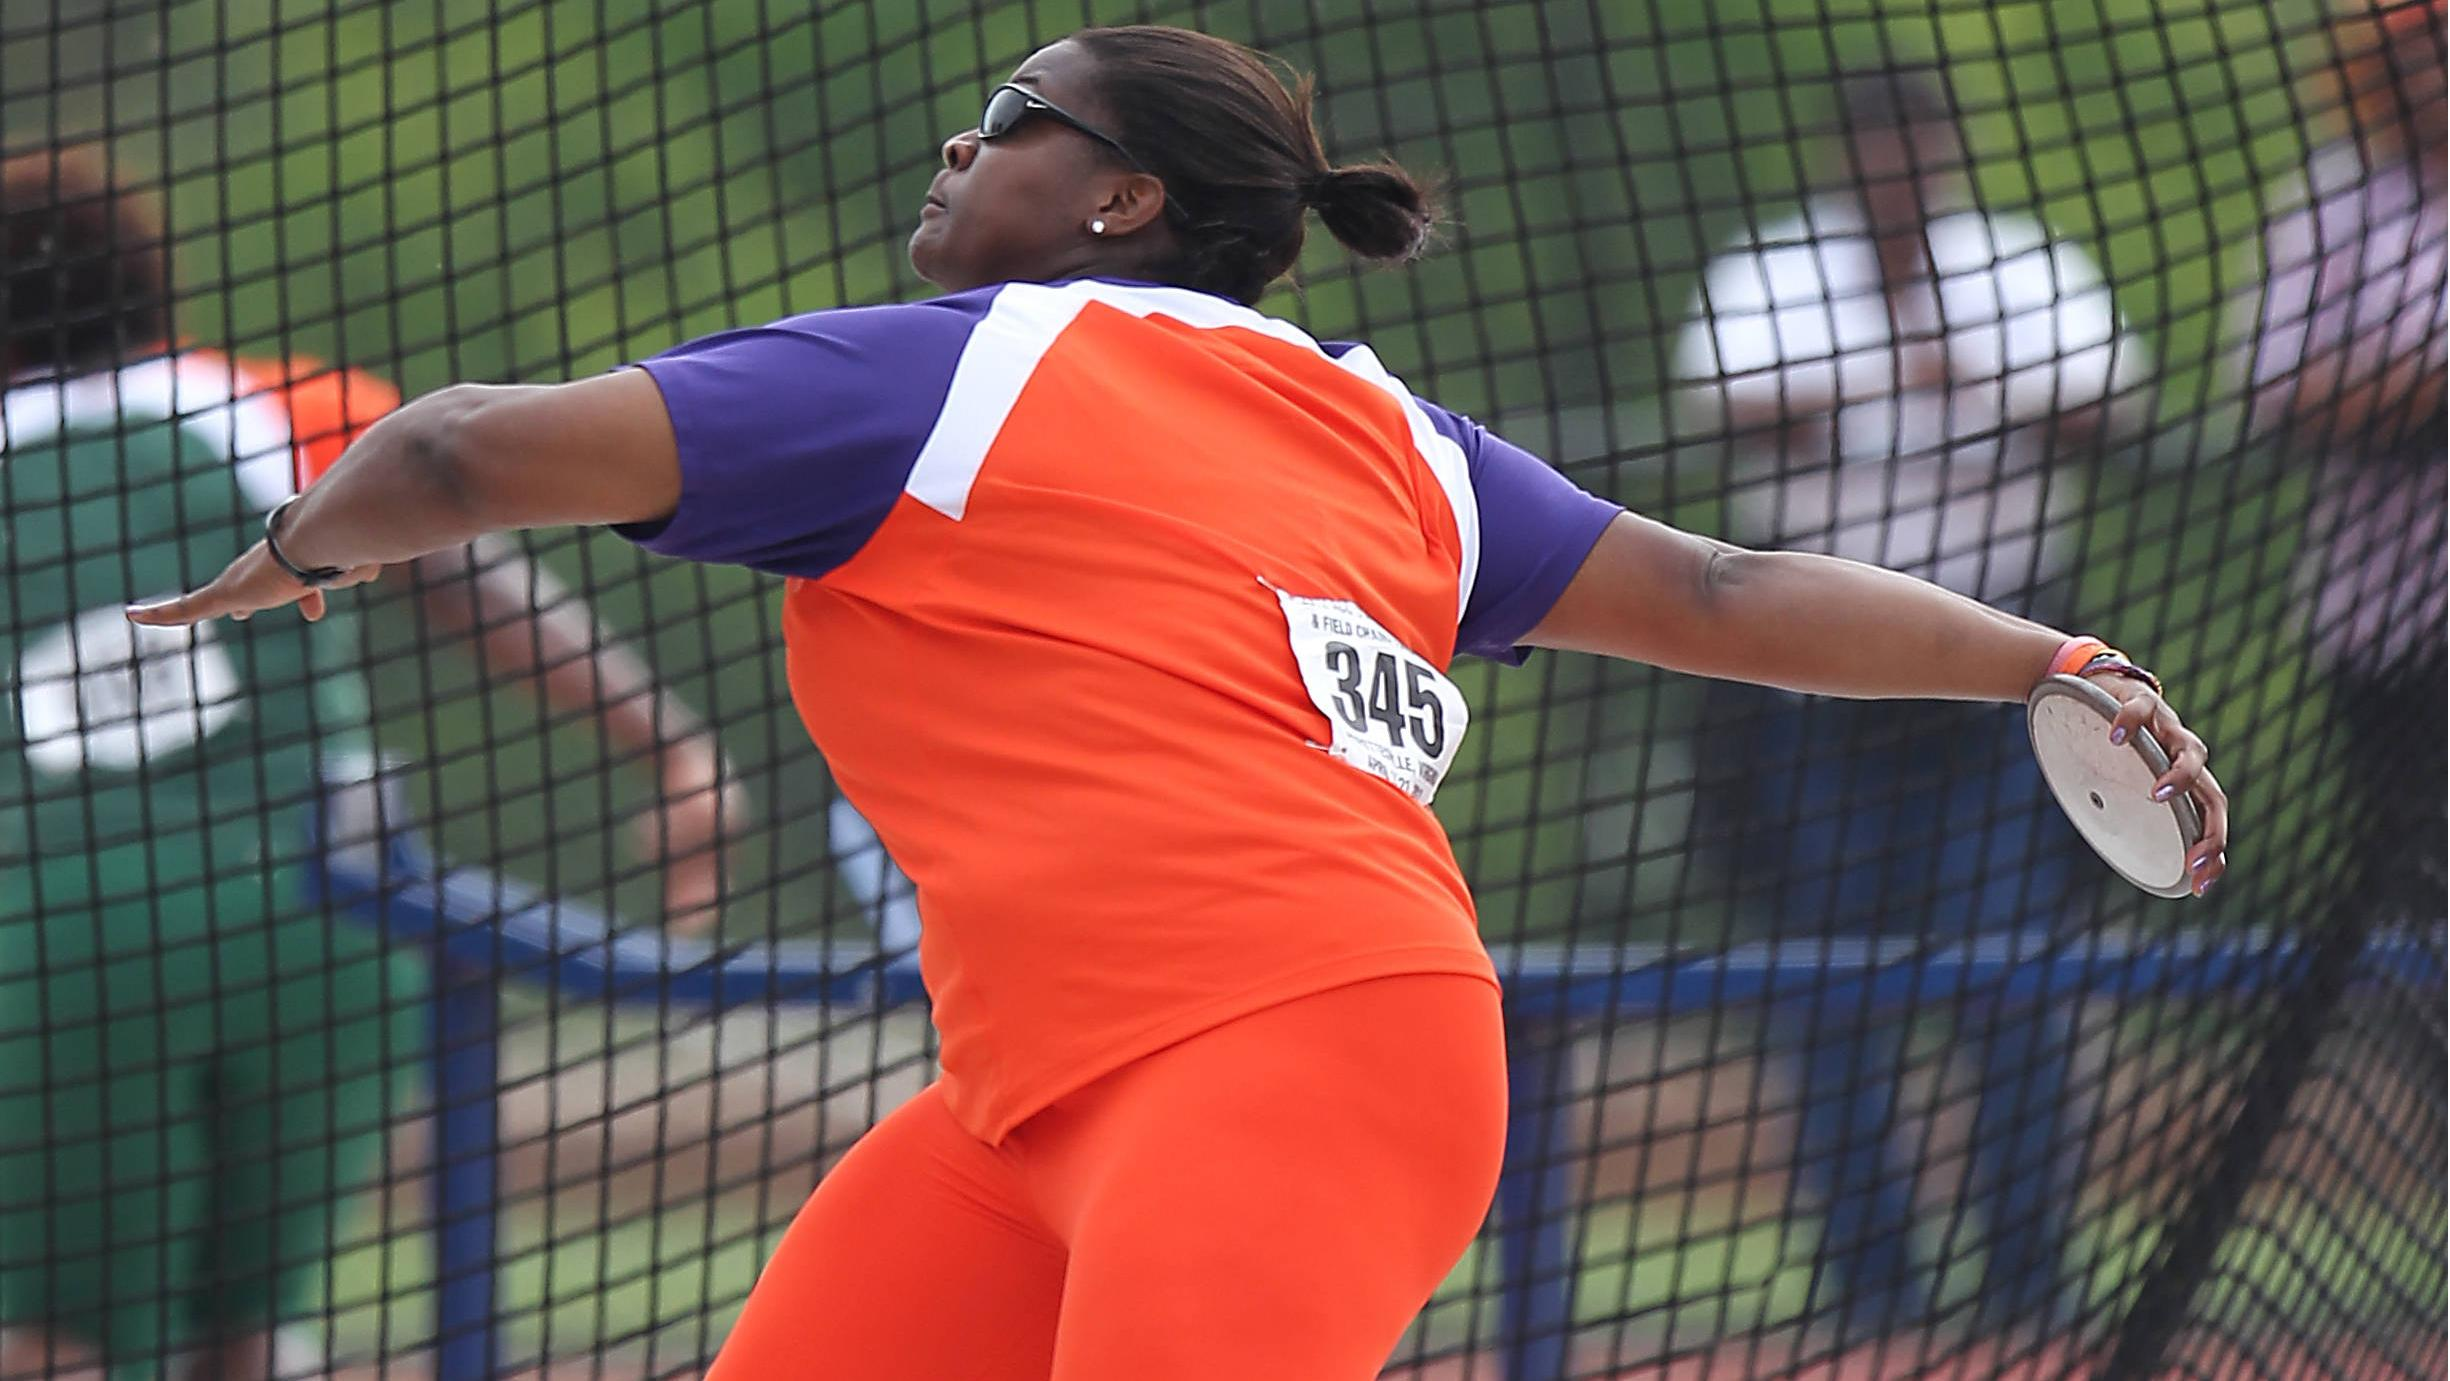 Waller Wins Hammer Throw Friday at Bob Pollock Invitational